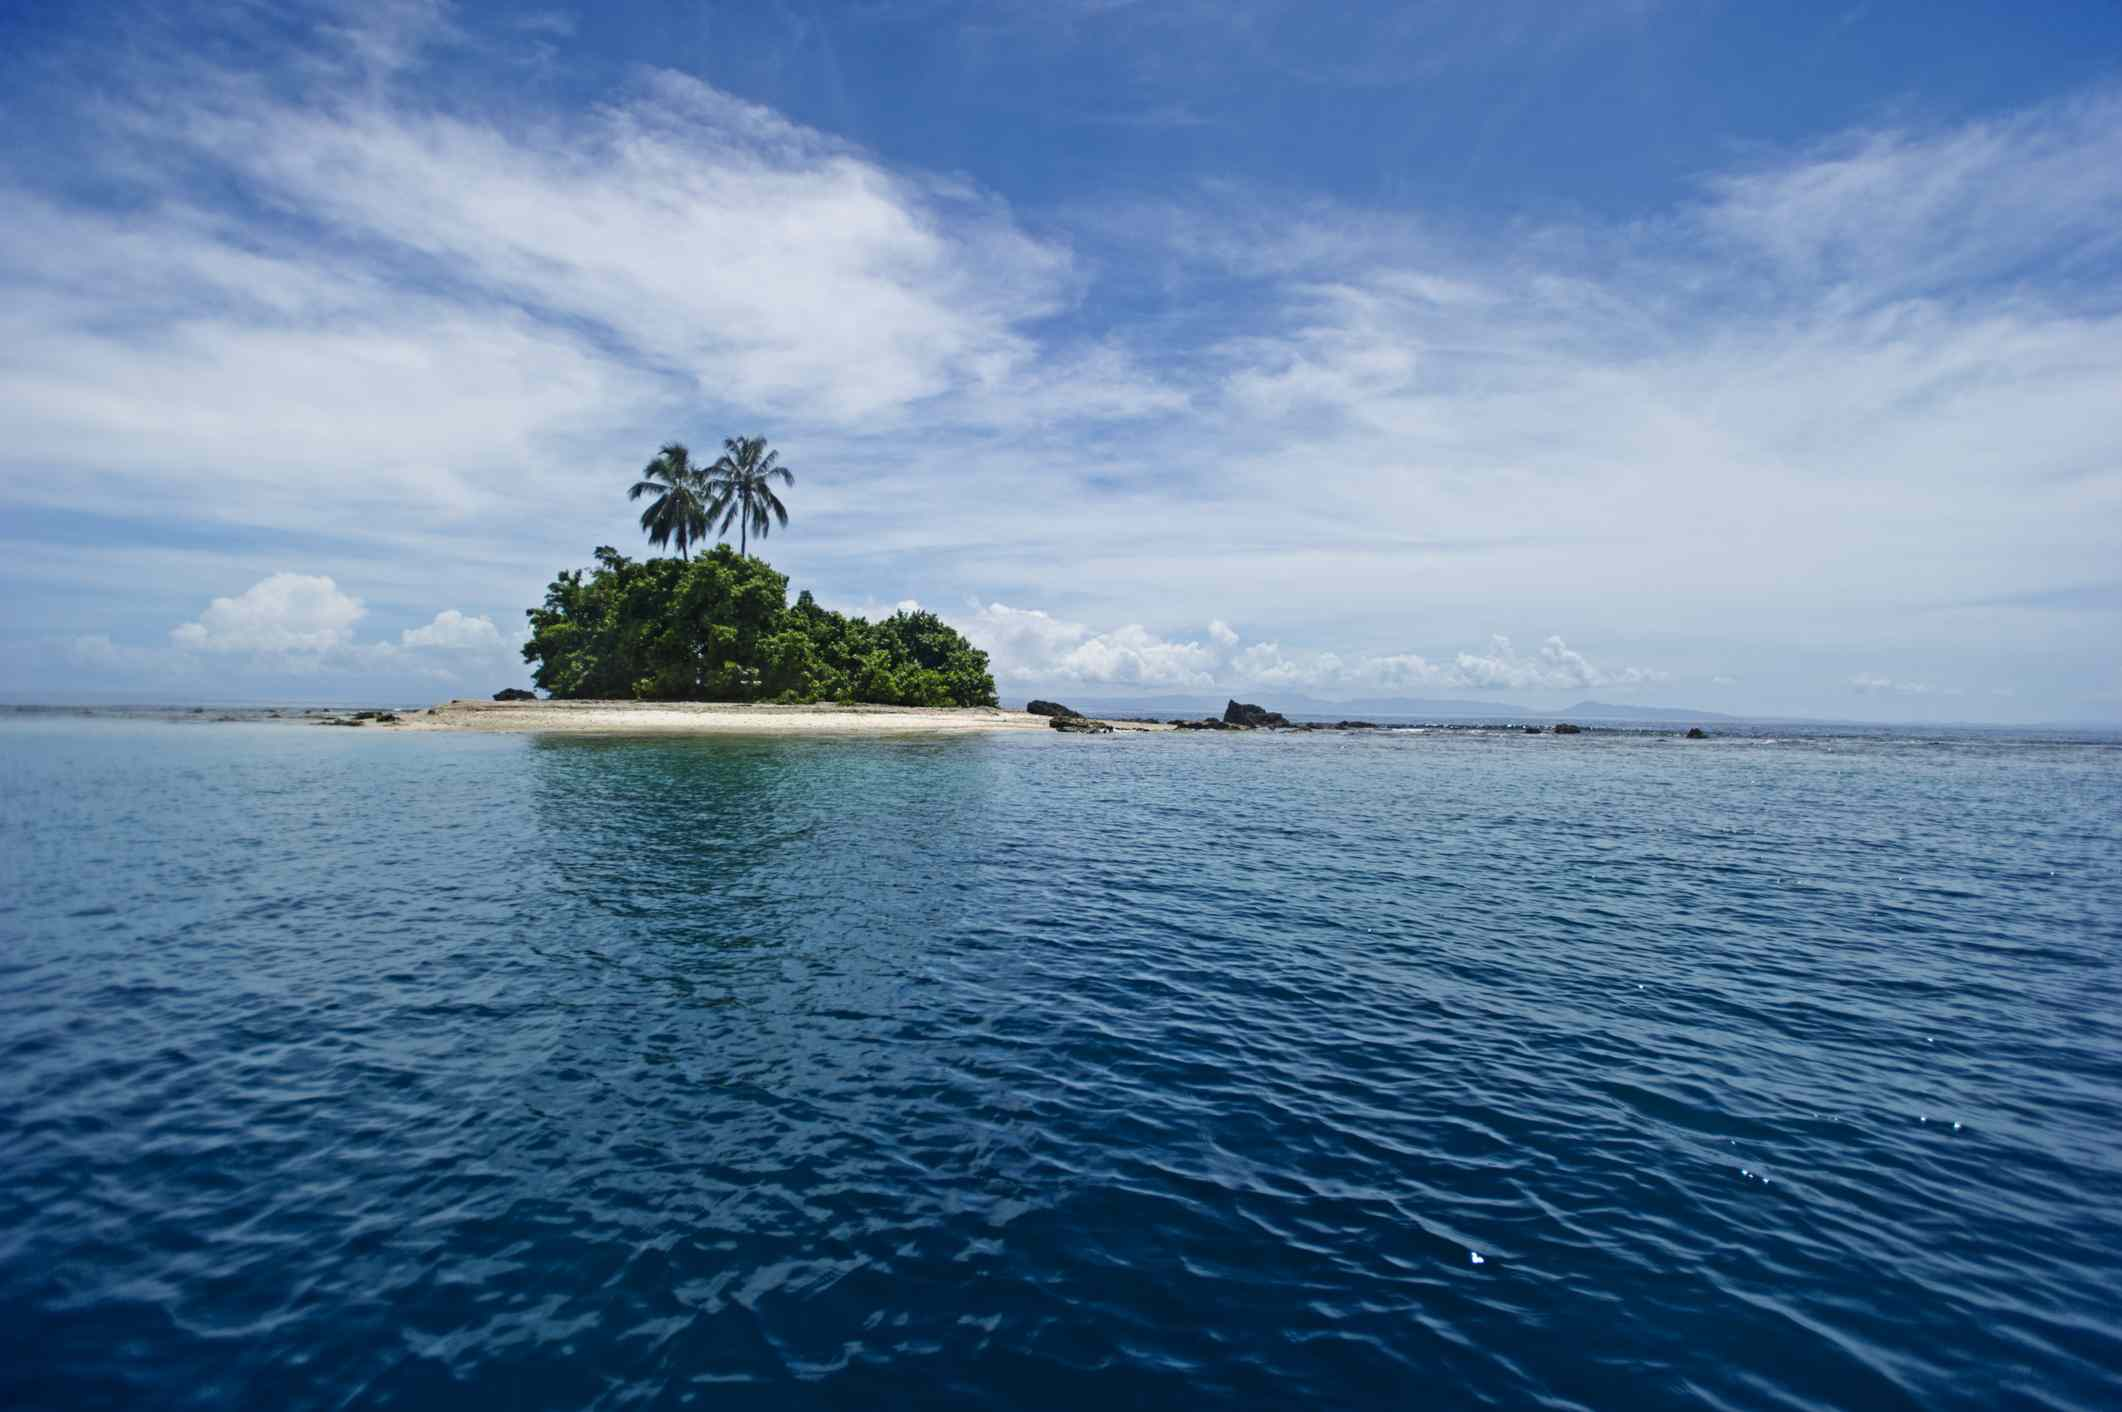 Tetepare Island with white beaches and palm trees in the distance as viewed from across the Pacific Ocean